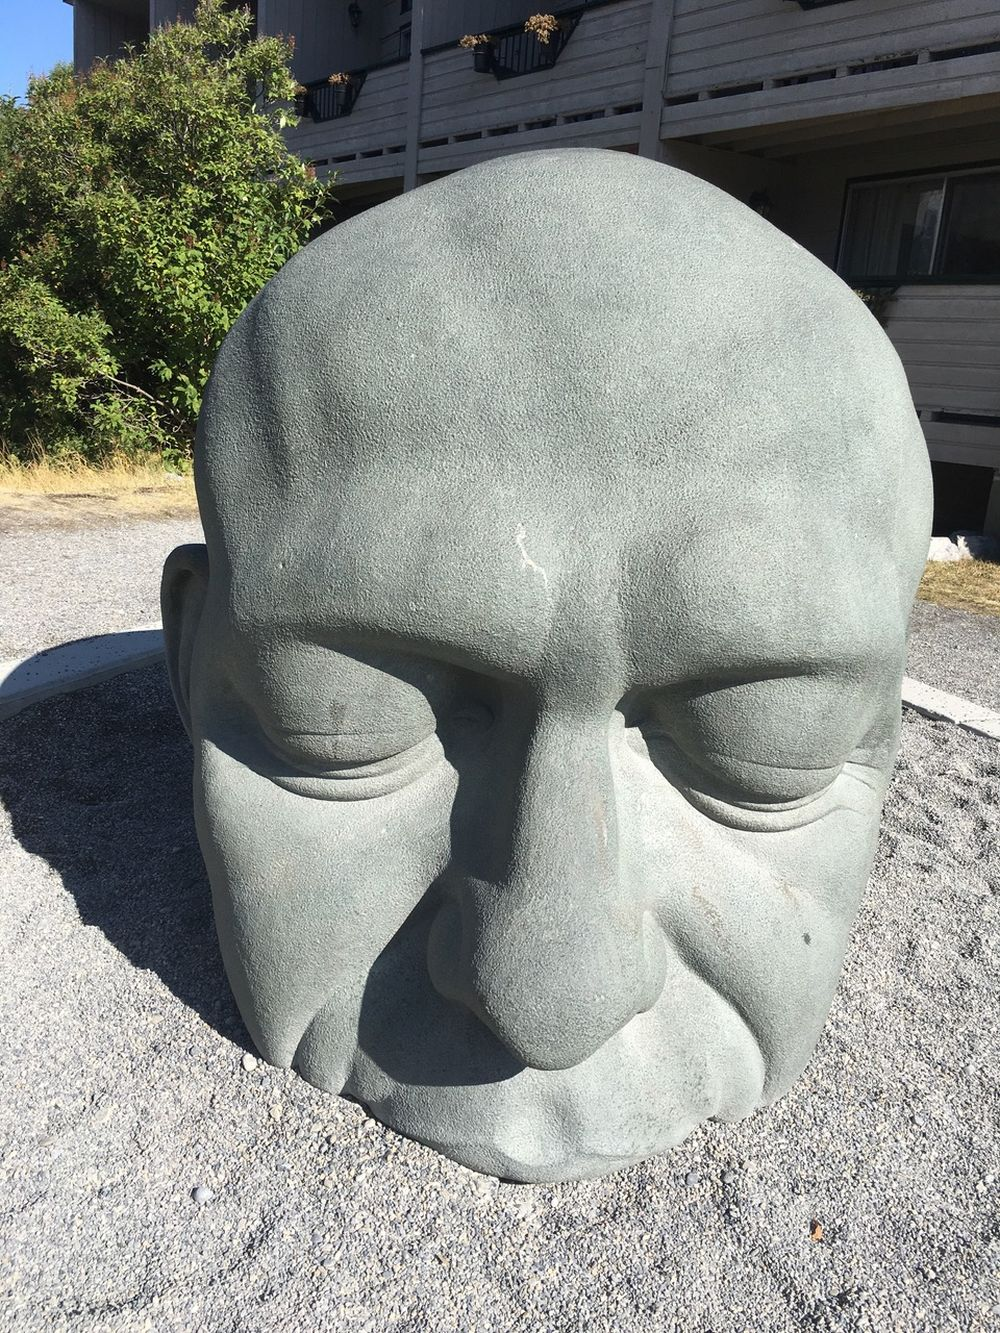 Concrete sculpture of a head